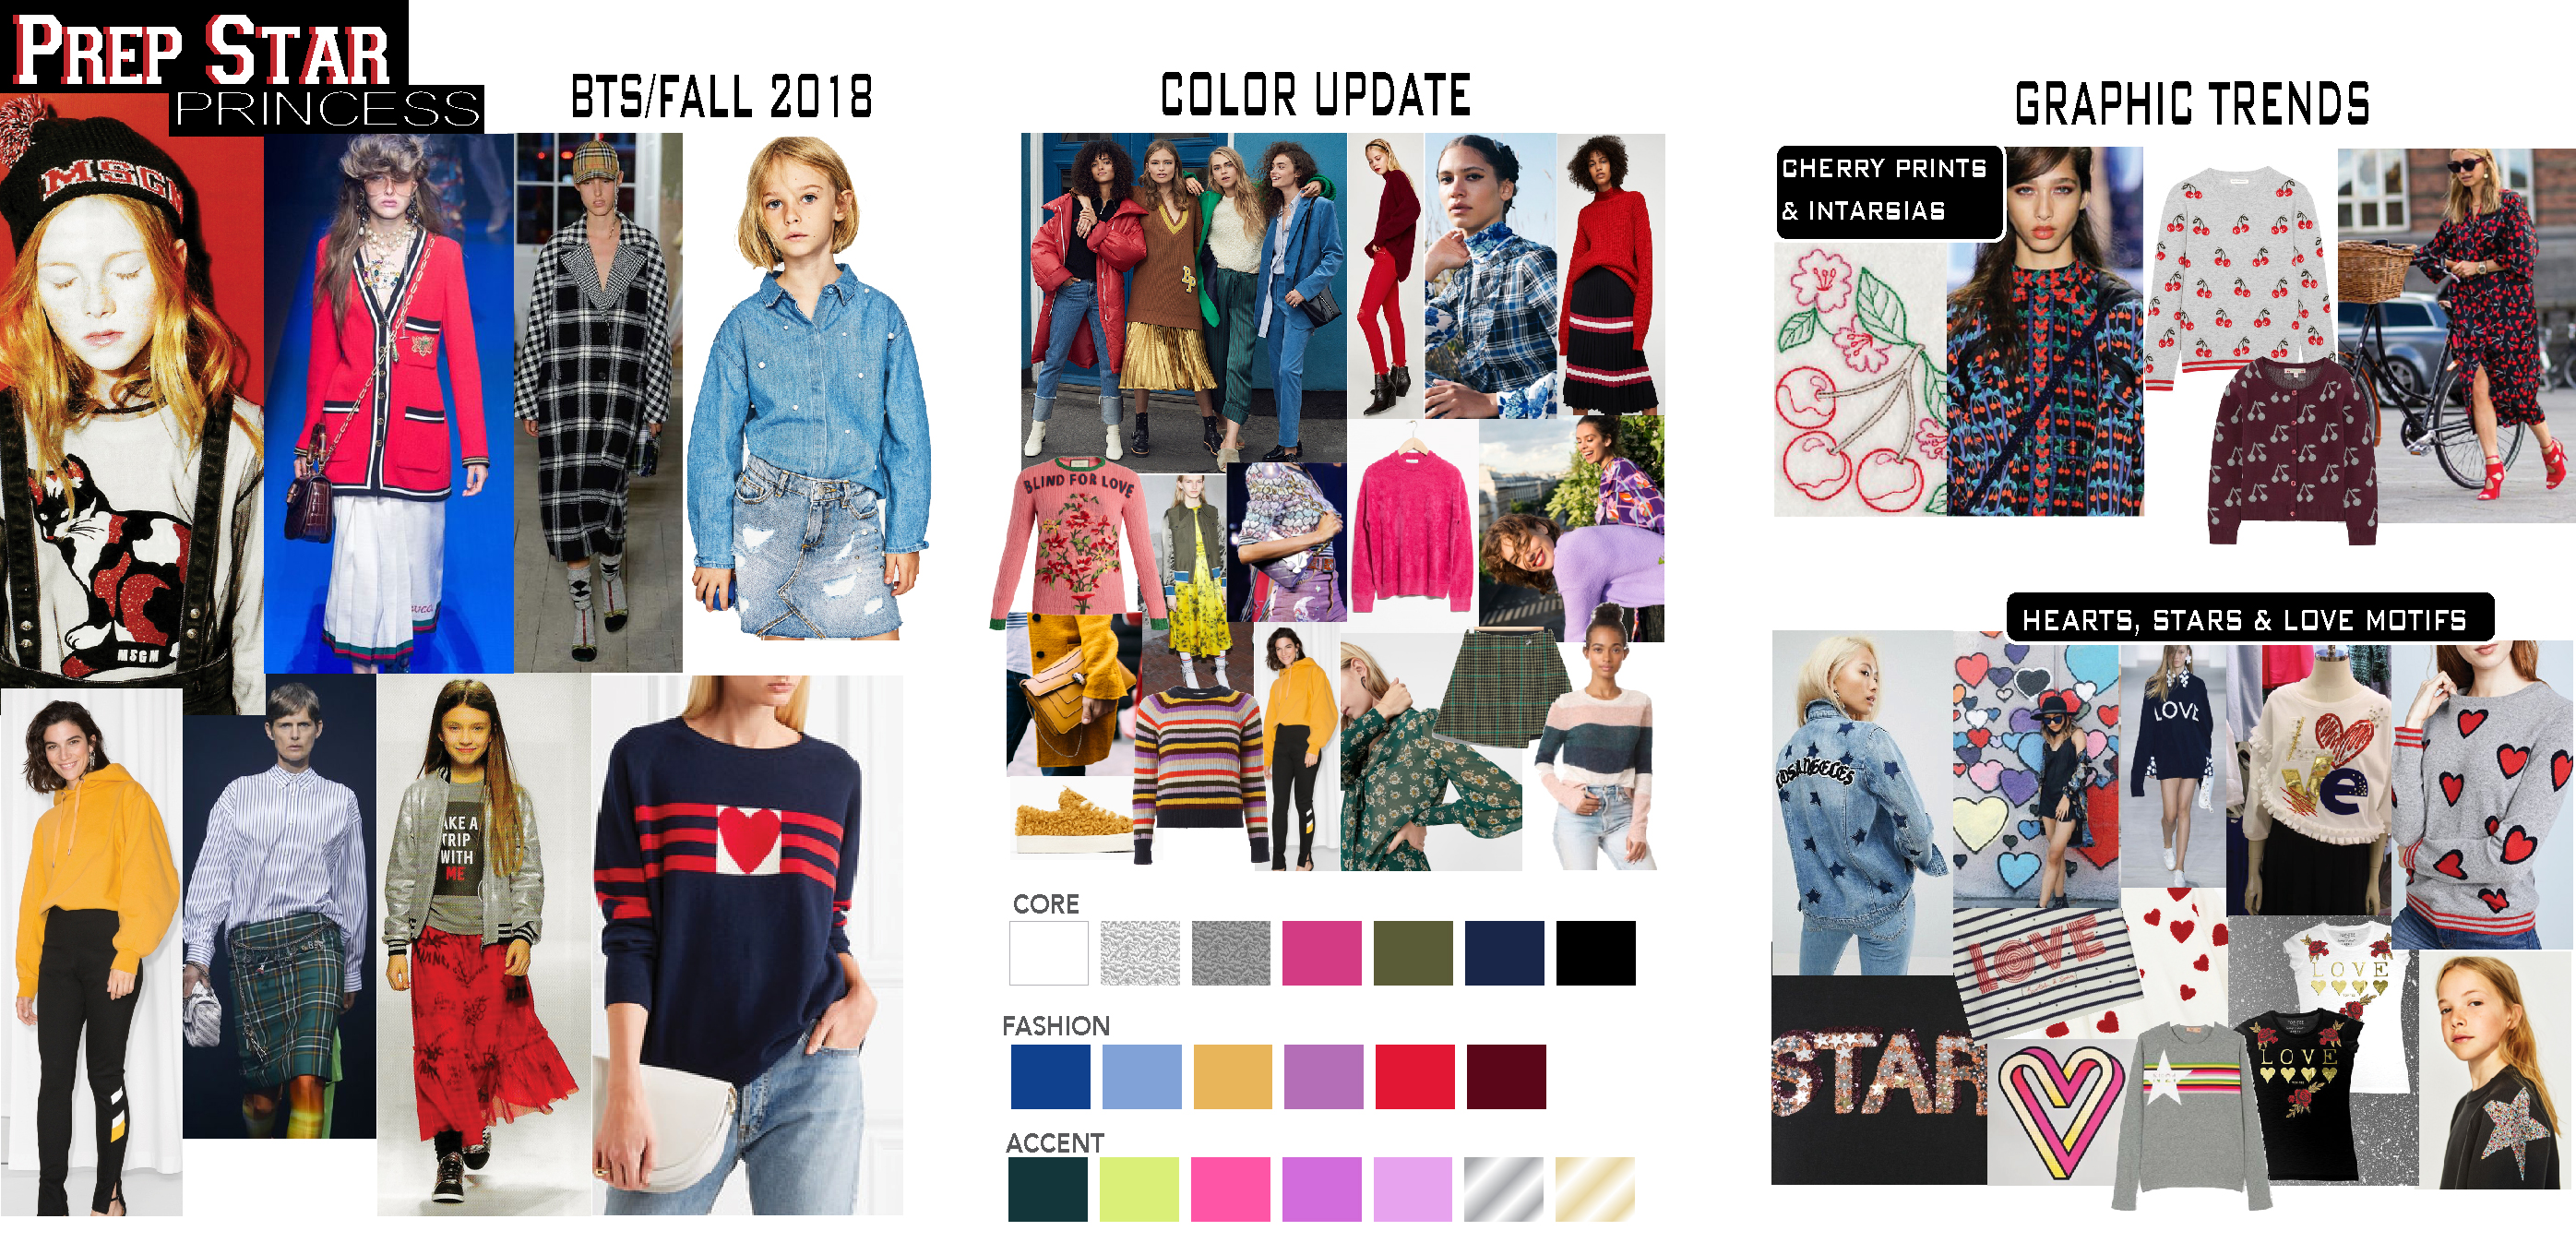 Fall 2018 Trend Re-cap